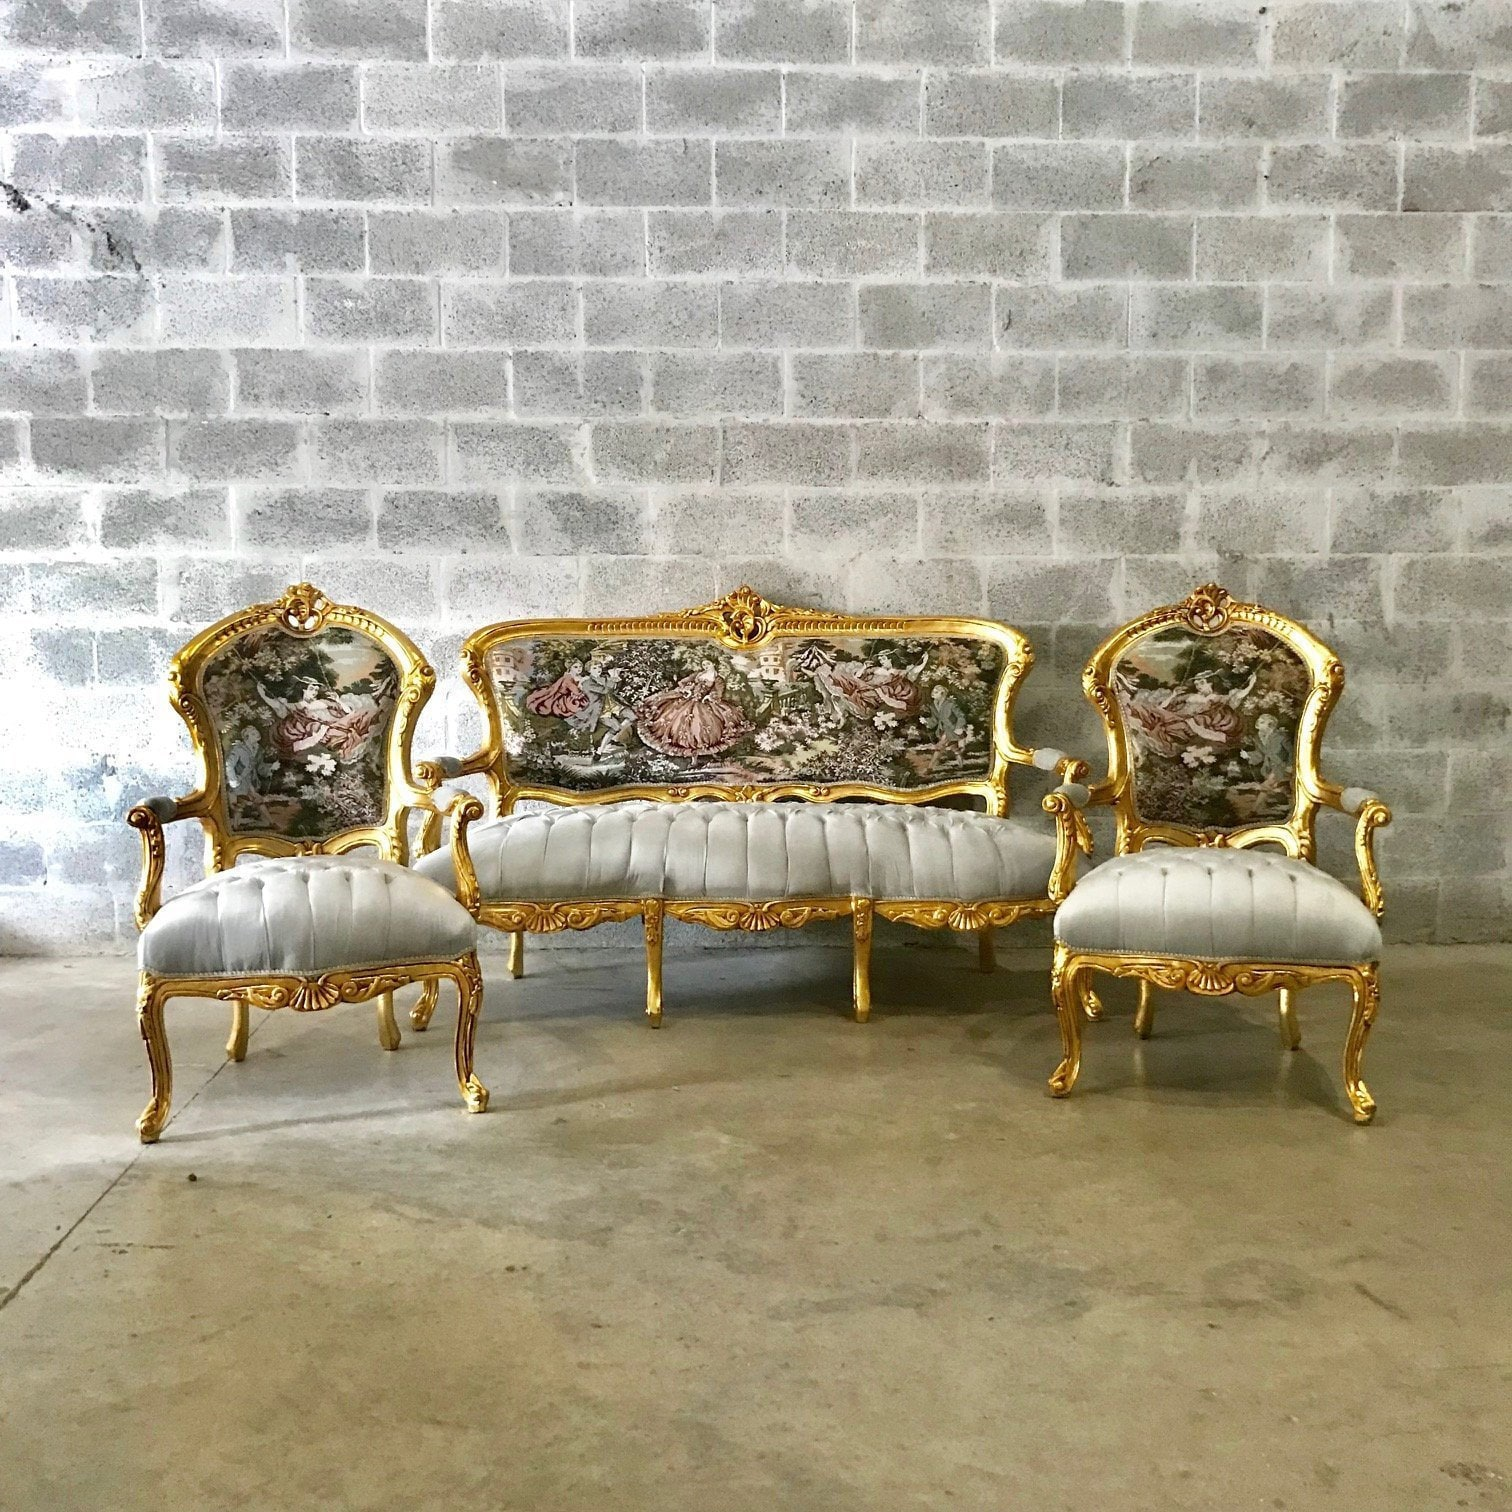 Miraculous French Chair Antique French Settee 3 Piece Set Vintage Evergreenethics Interior Chair Design Evergreenethicsorg